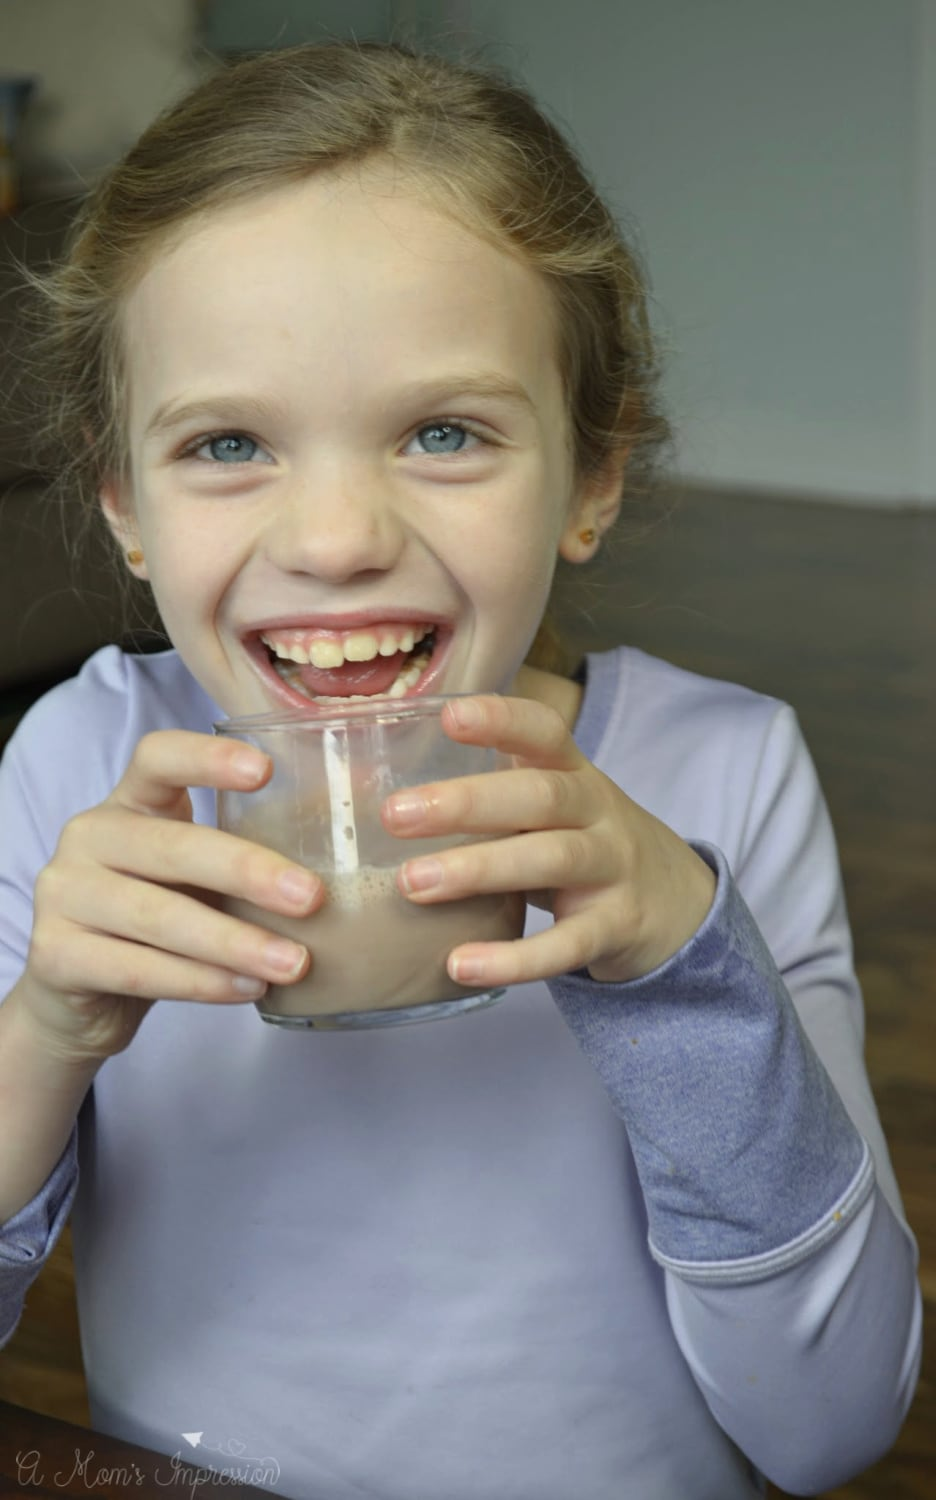 a little girl smiling while drinking chocolate milk from a glass